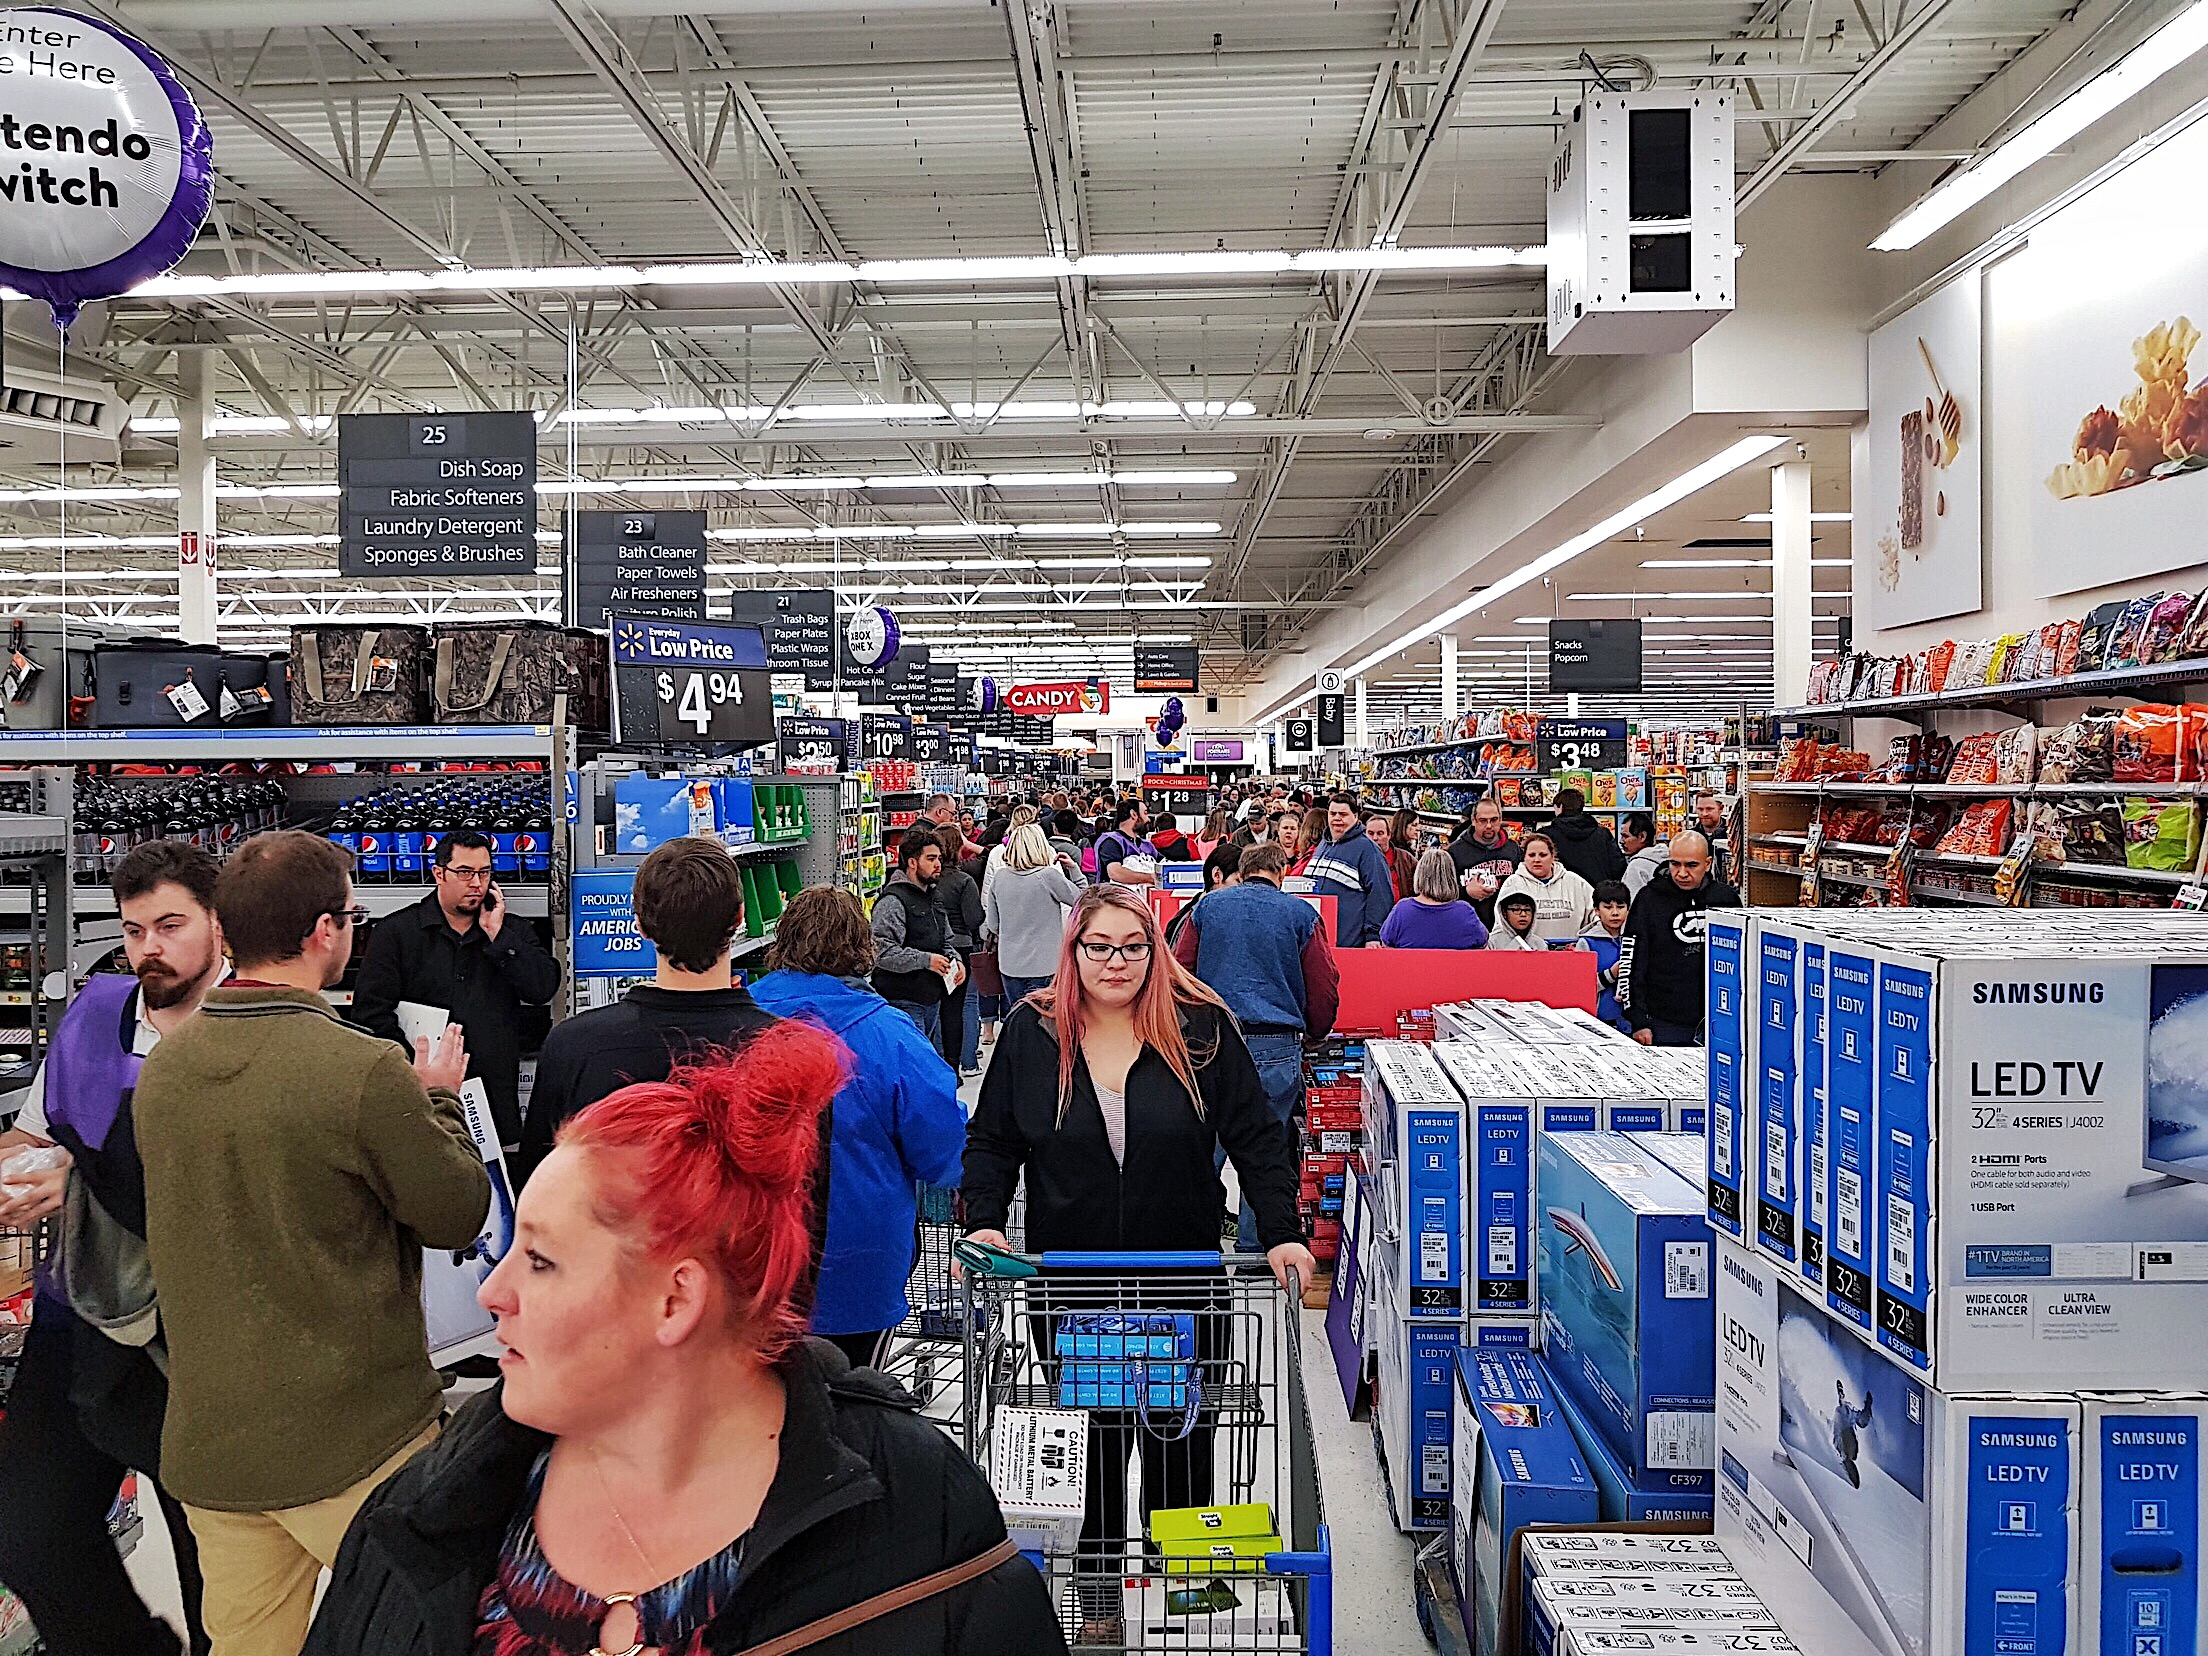 Walmart Black Friday 2017 - Wausau, Wisconsin